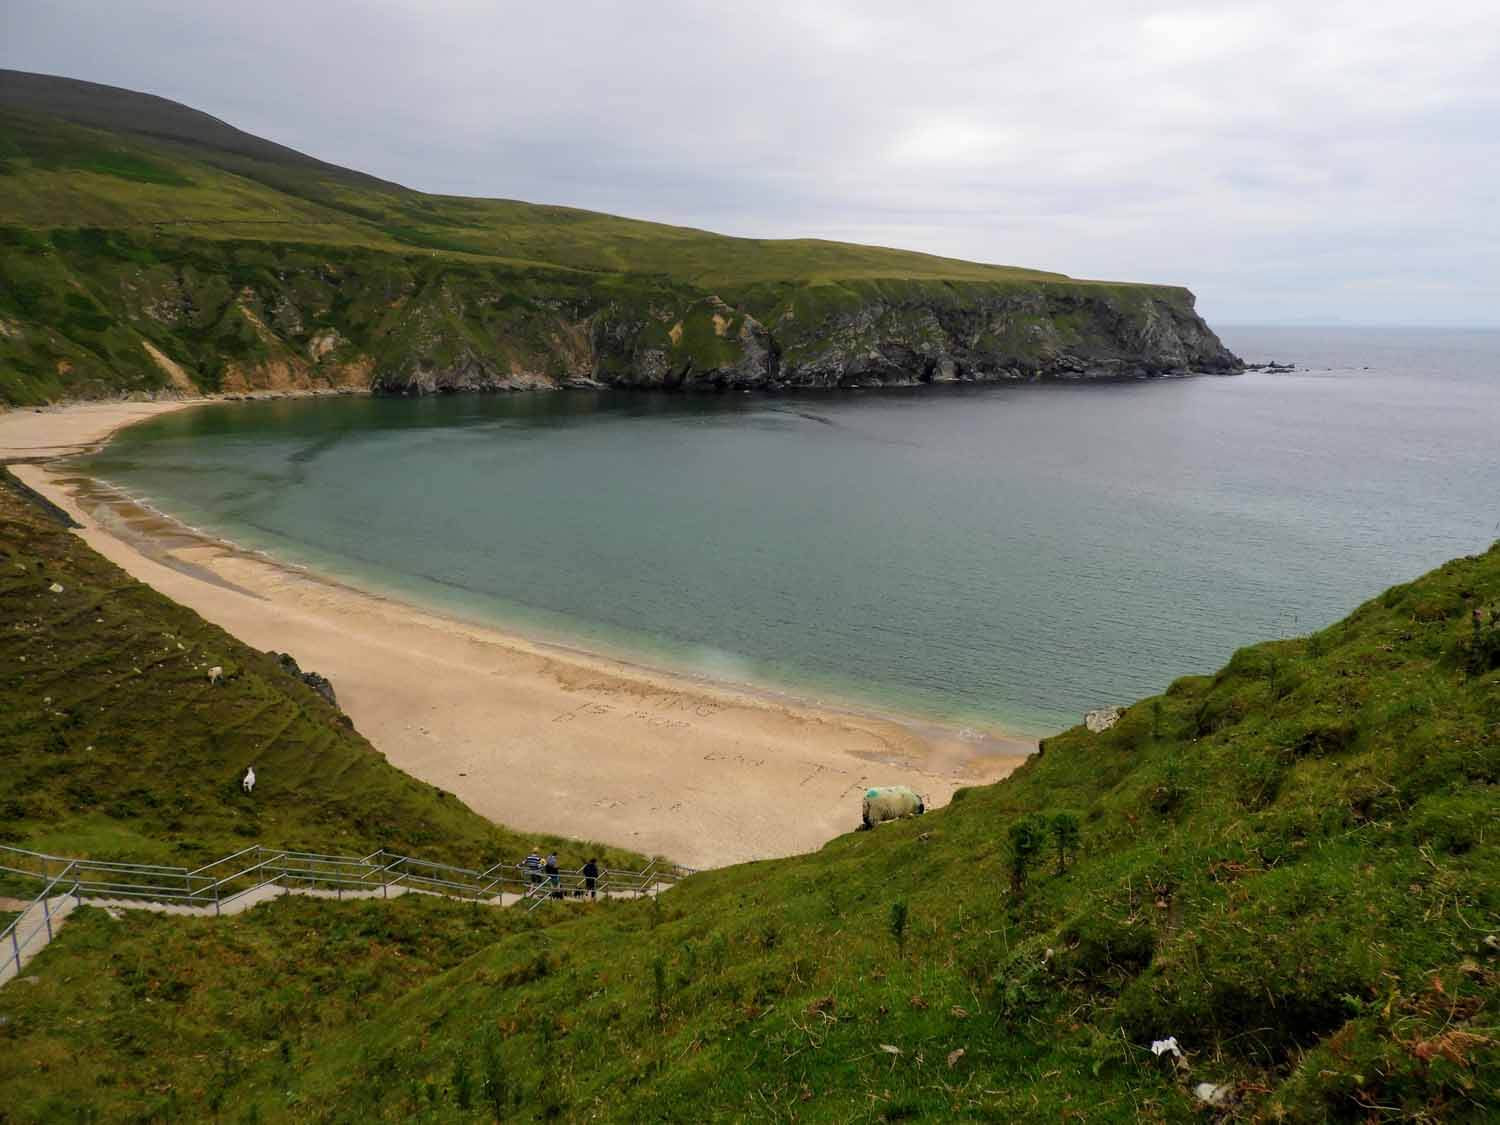 ireland-donegal-ireland-donegal-silver-strand-malin-beg-sand-waves-beautiful-view.jpg